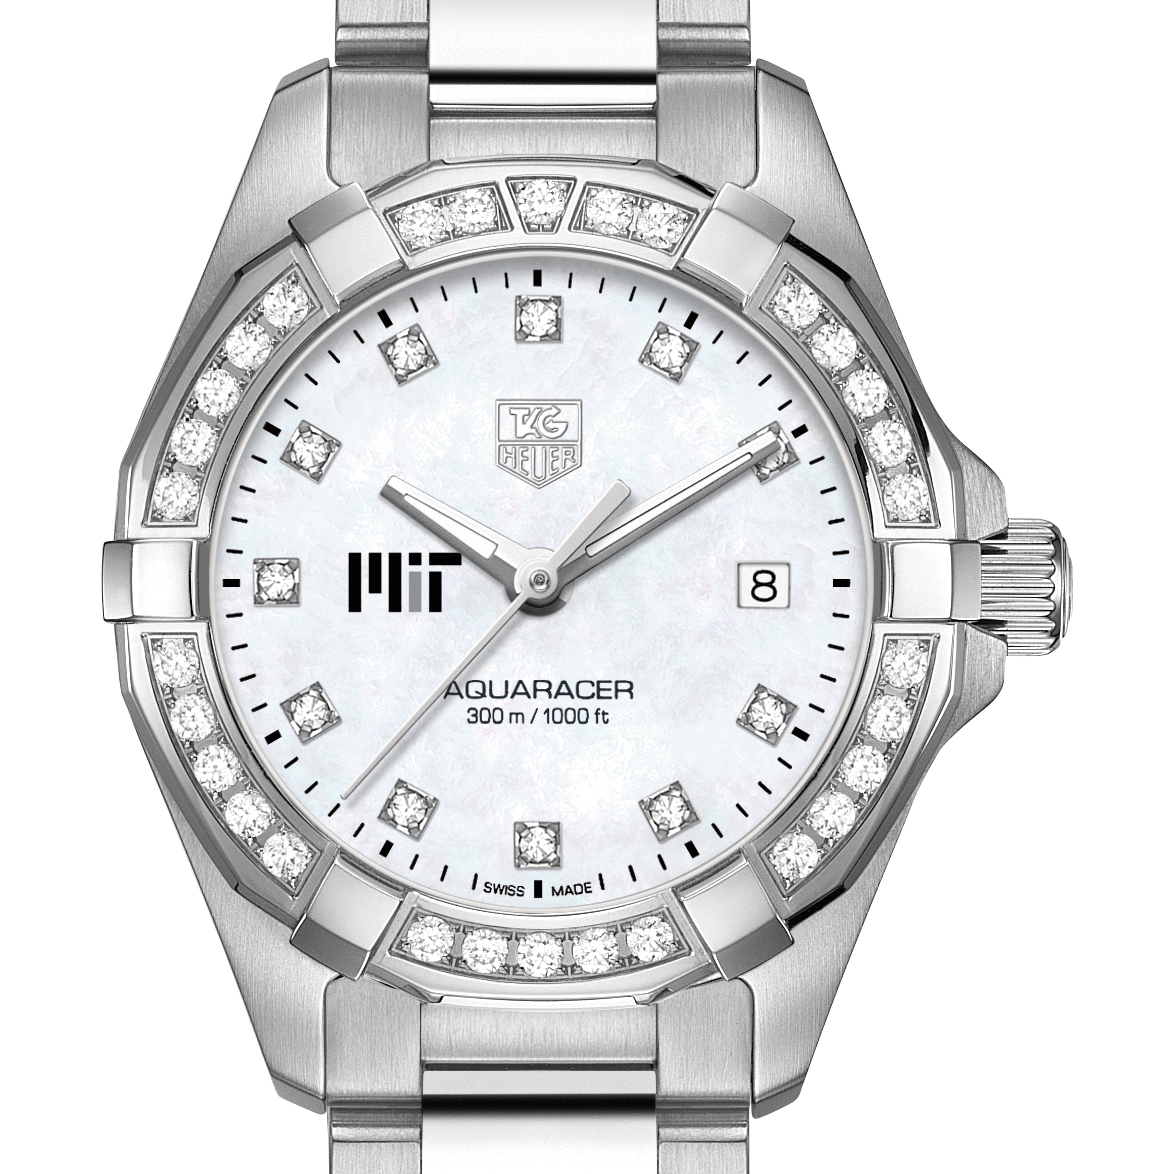 MIT Women's TAG Heuer Steel Aquaracer with MOP Diamond Dial & Diamond Bezel - Image 1